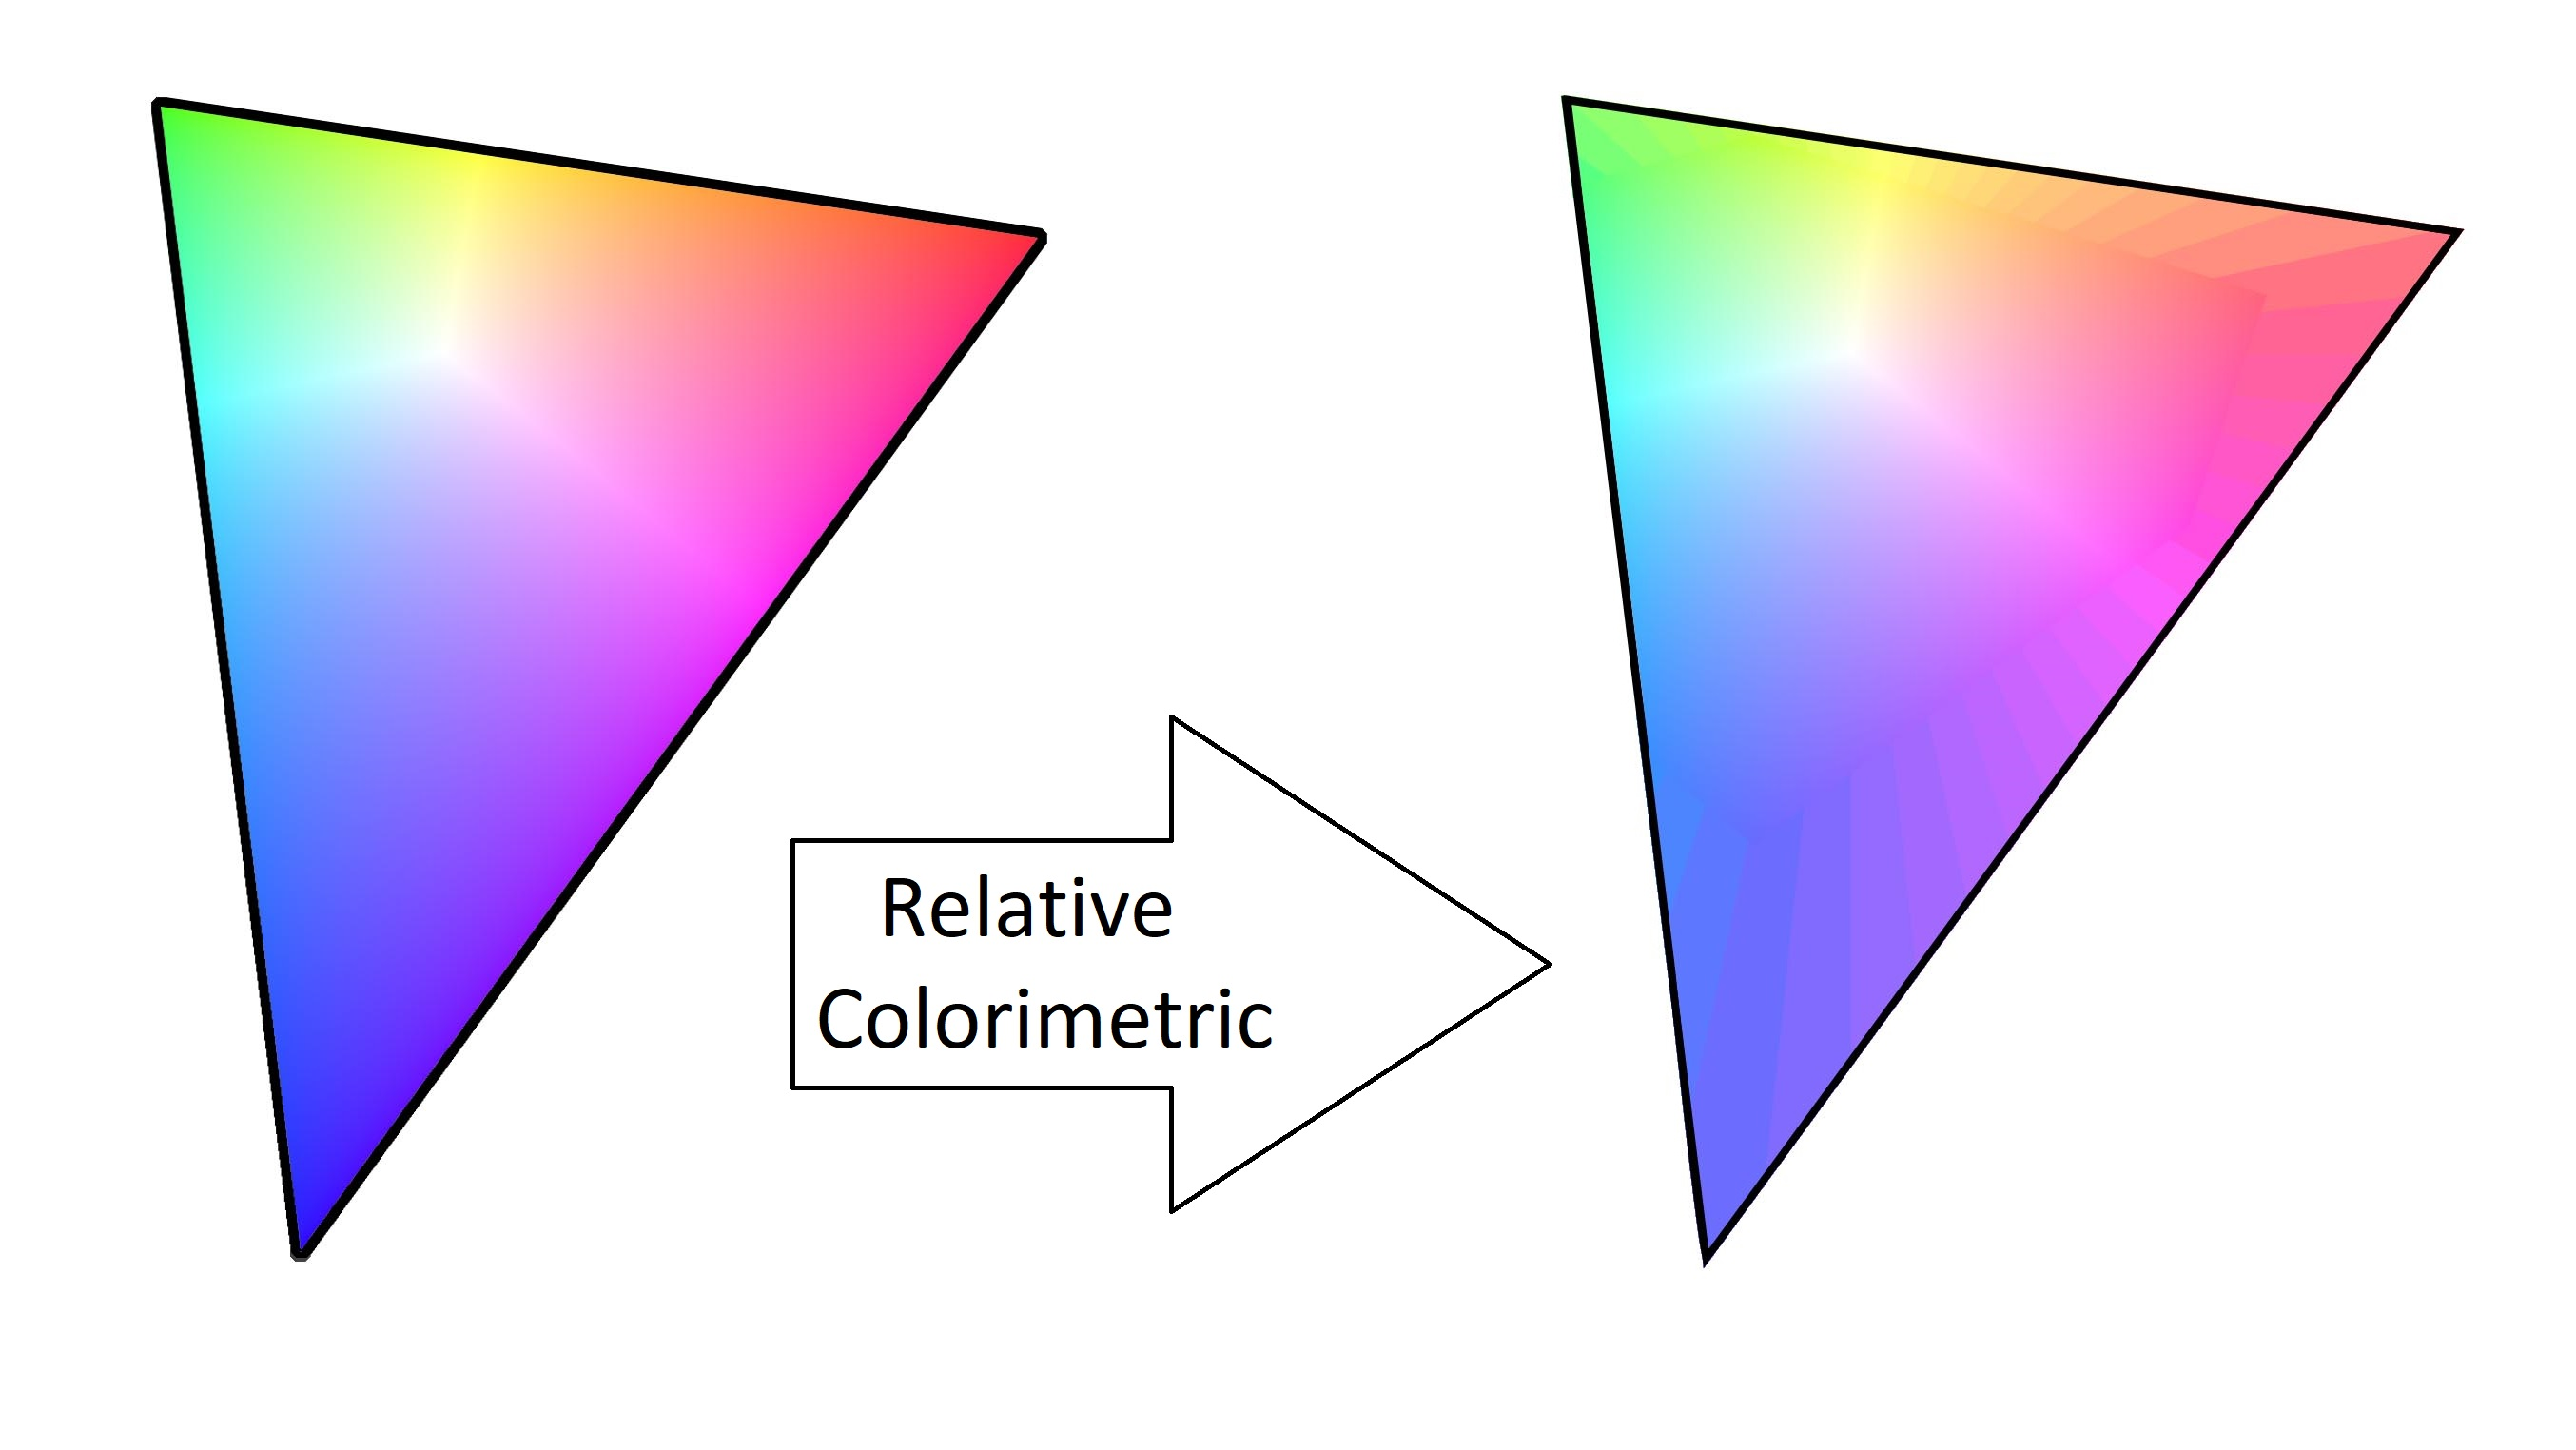 Relative Colorimetric Rendering